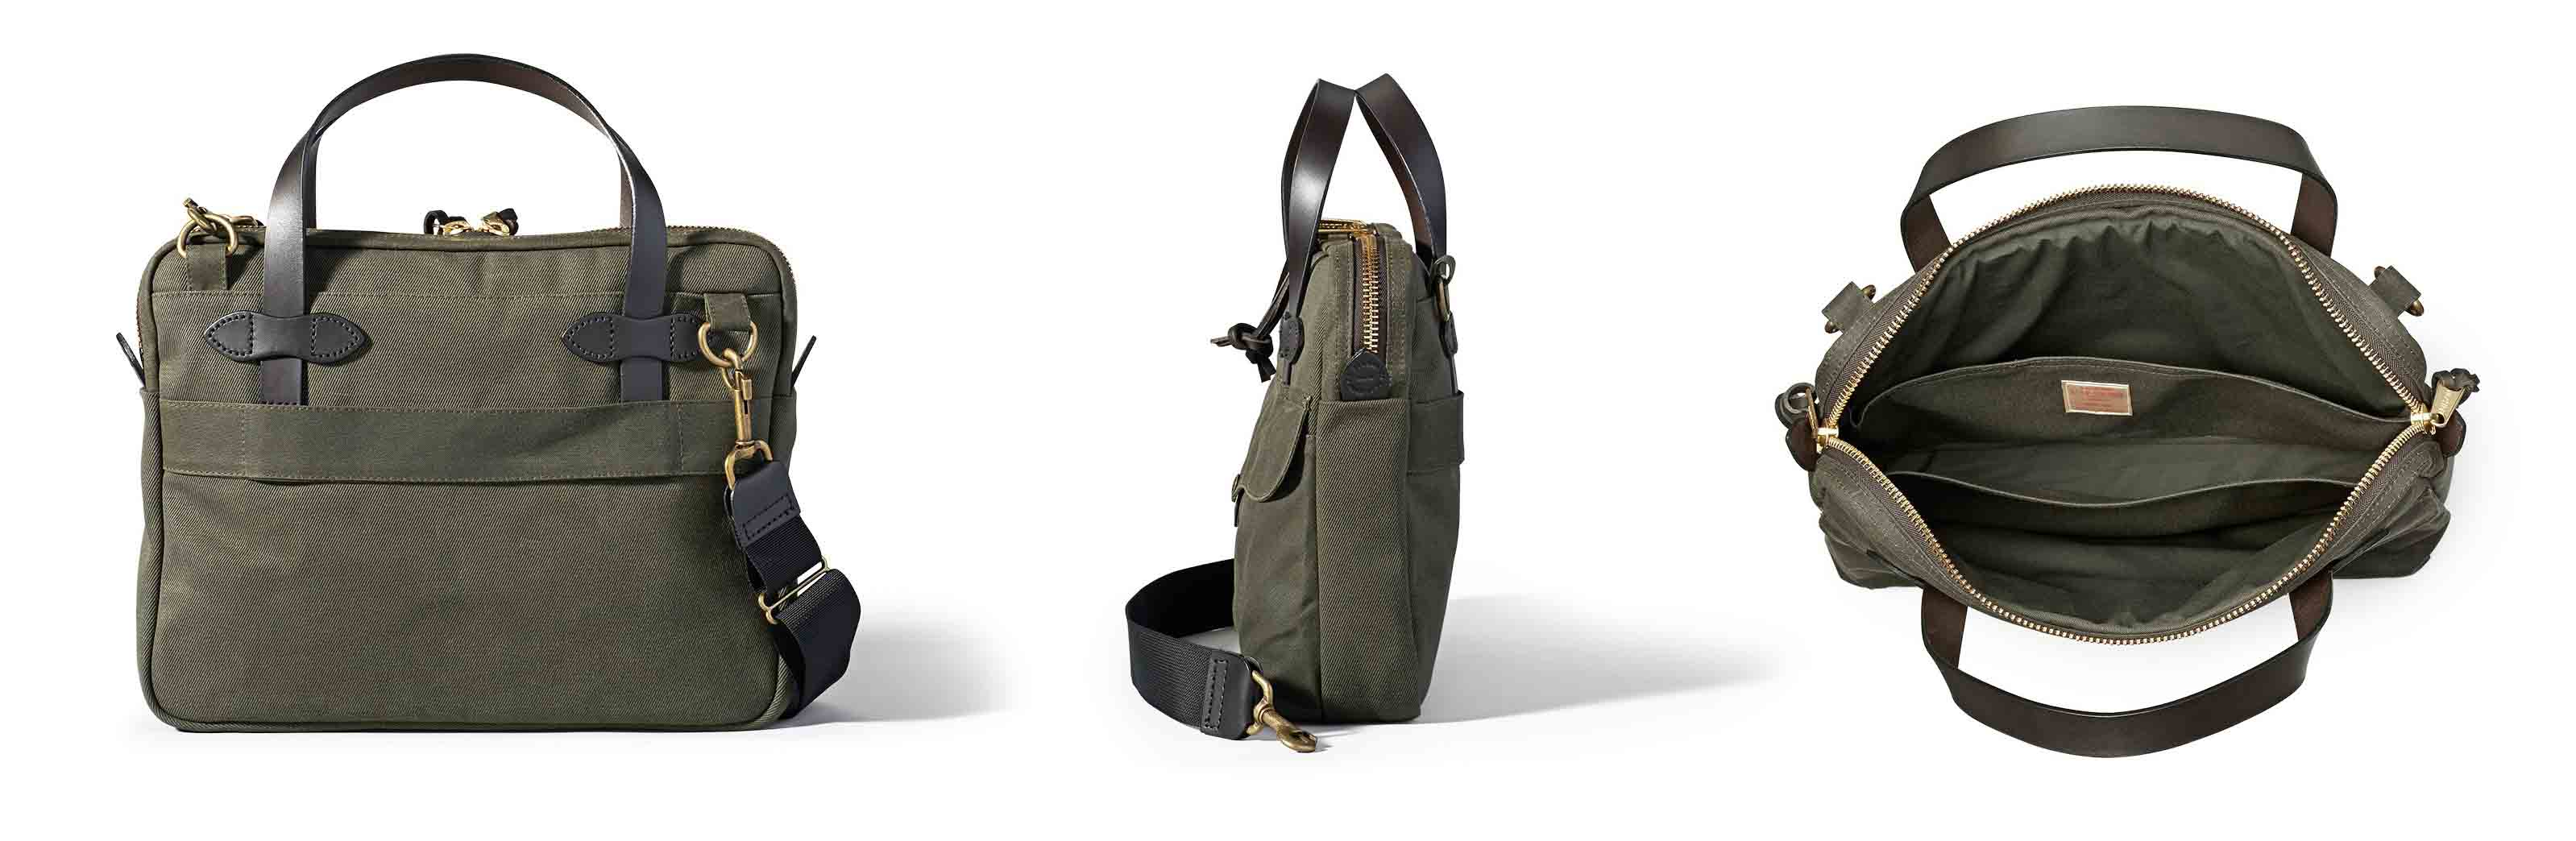 Filson Tablet Commuting Bag